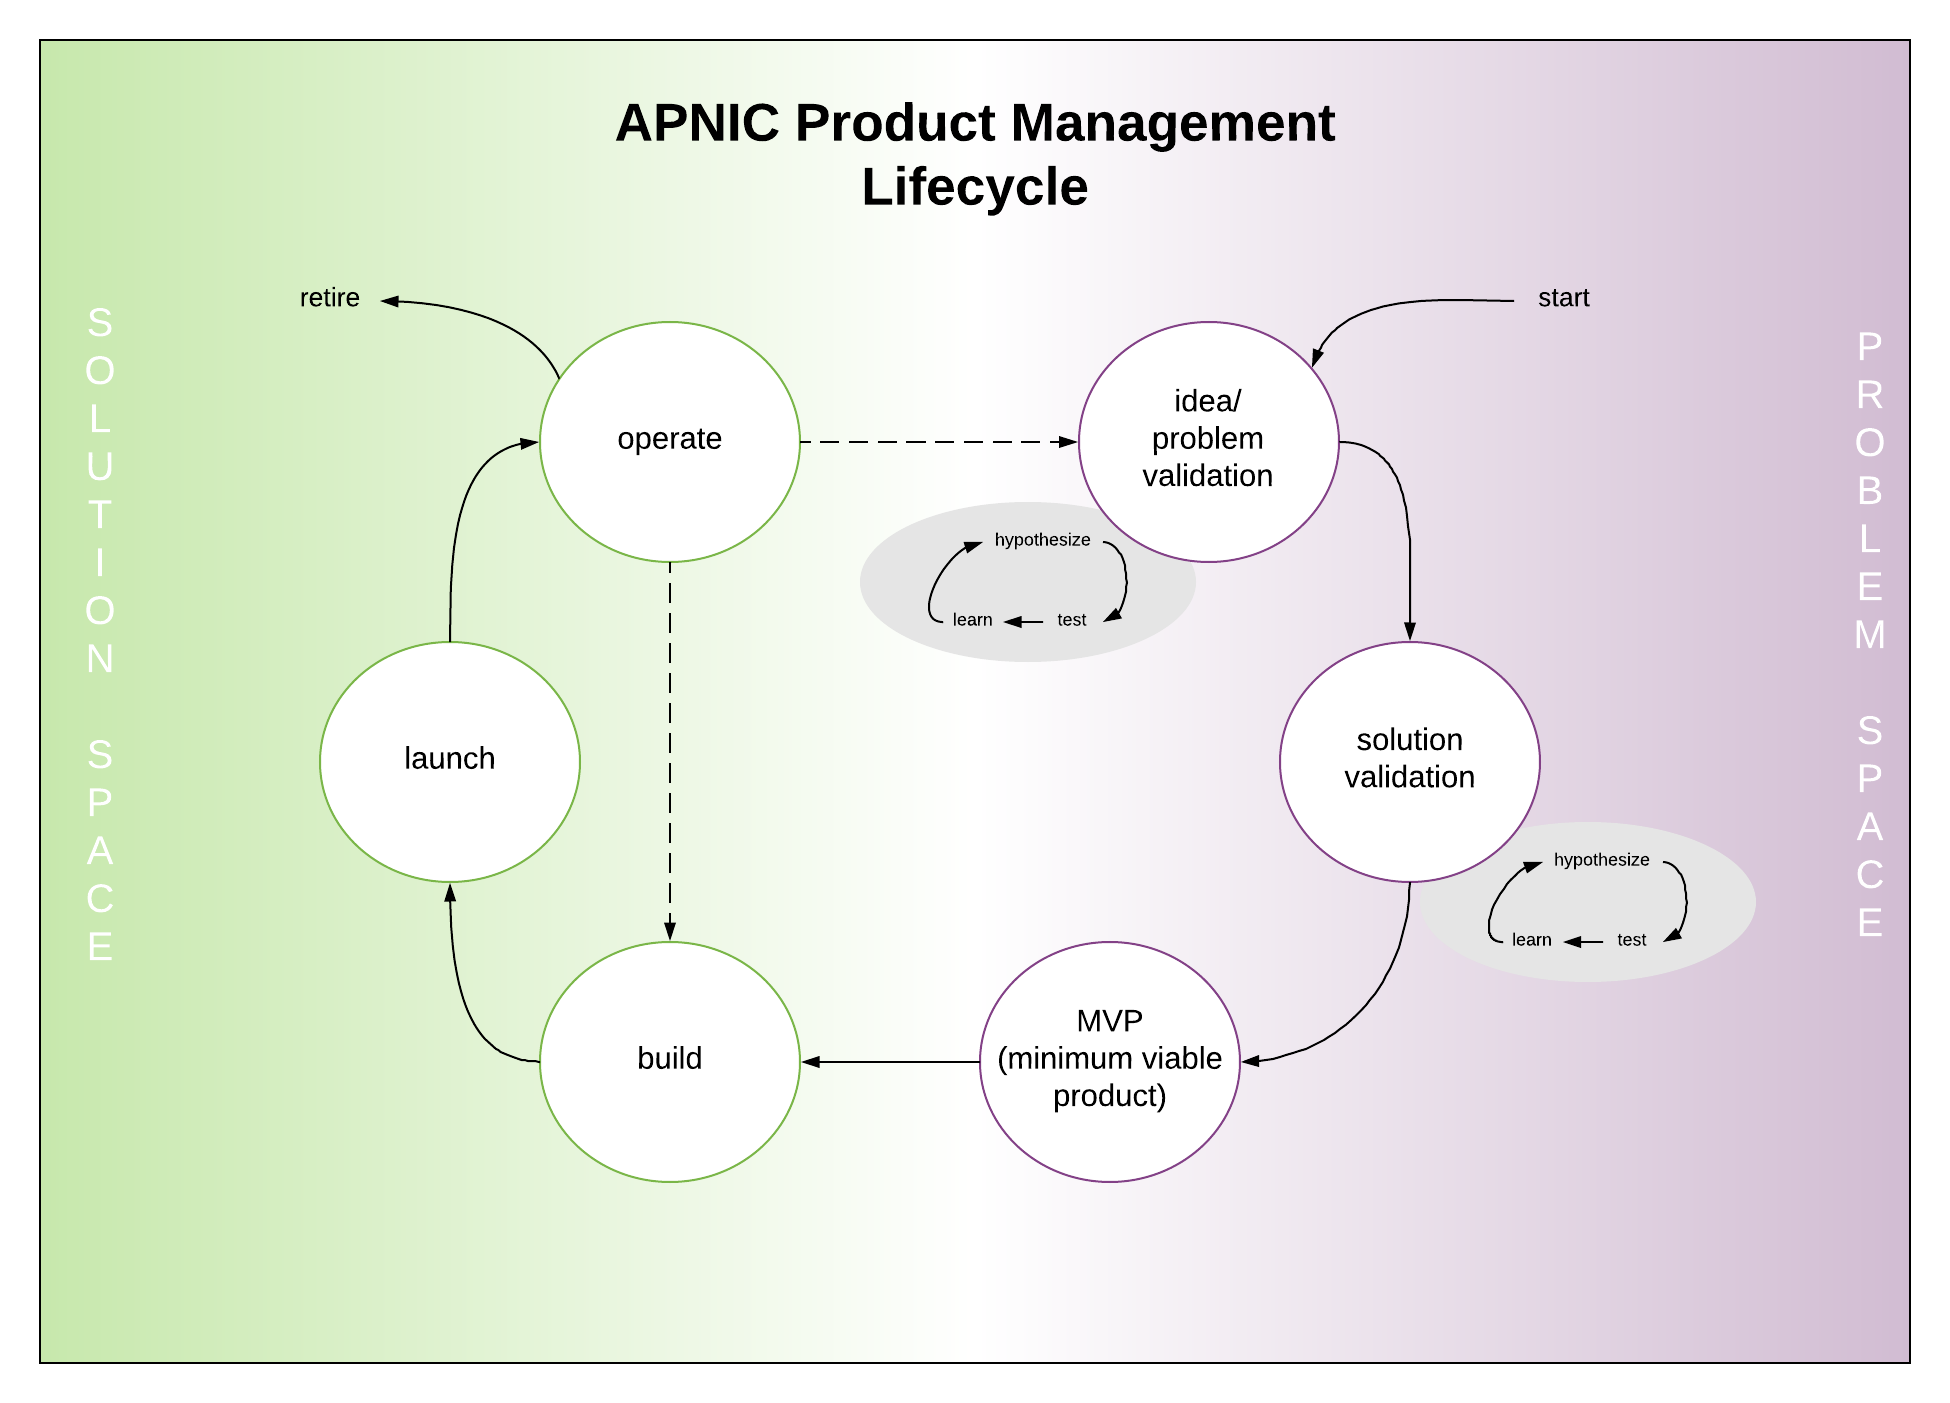 APNIC Product Management Lifecycle